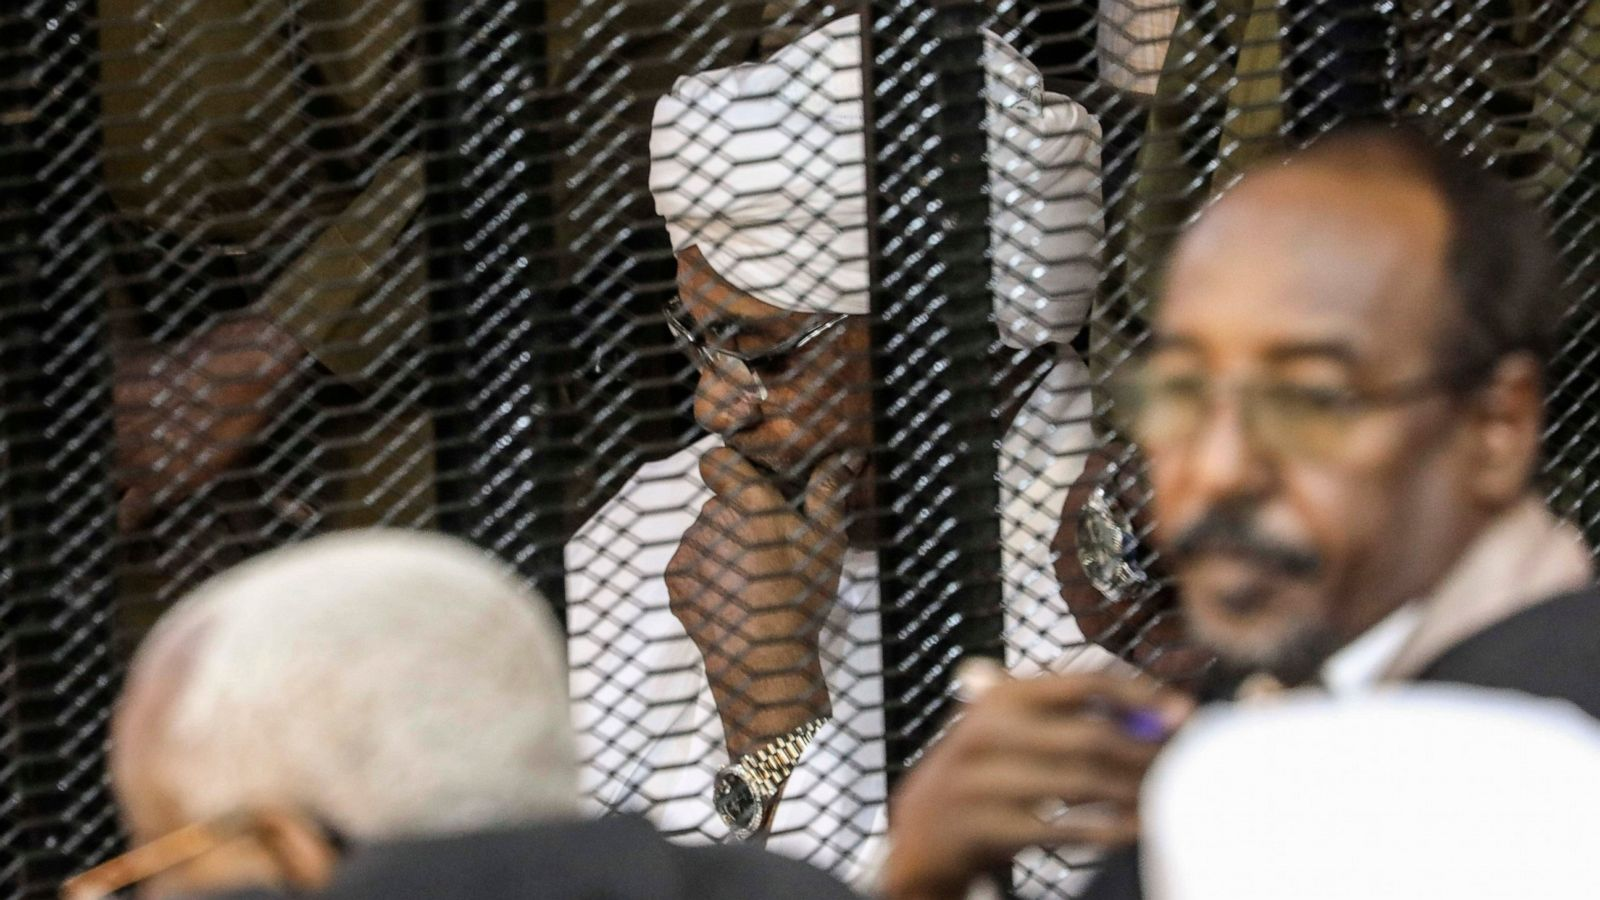 Official: Sudan to hand over al-Bashir for genocide trial - ABC News